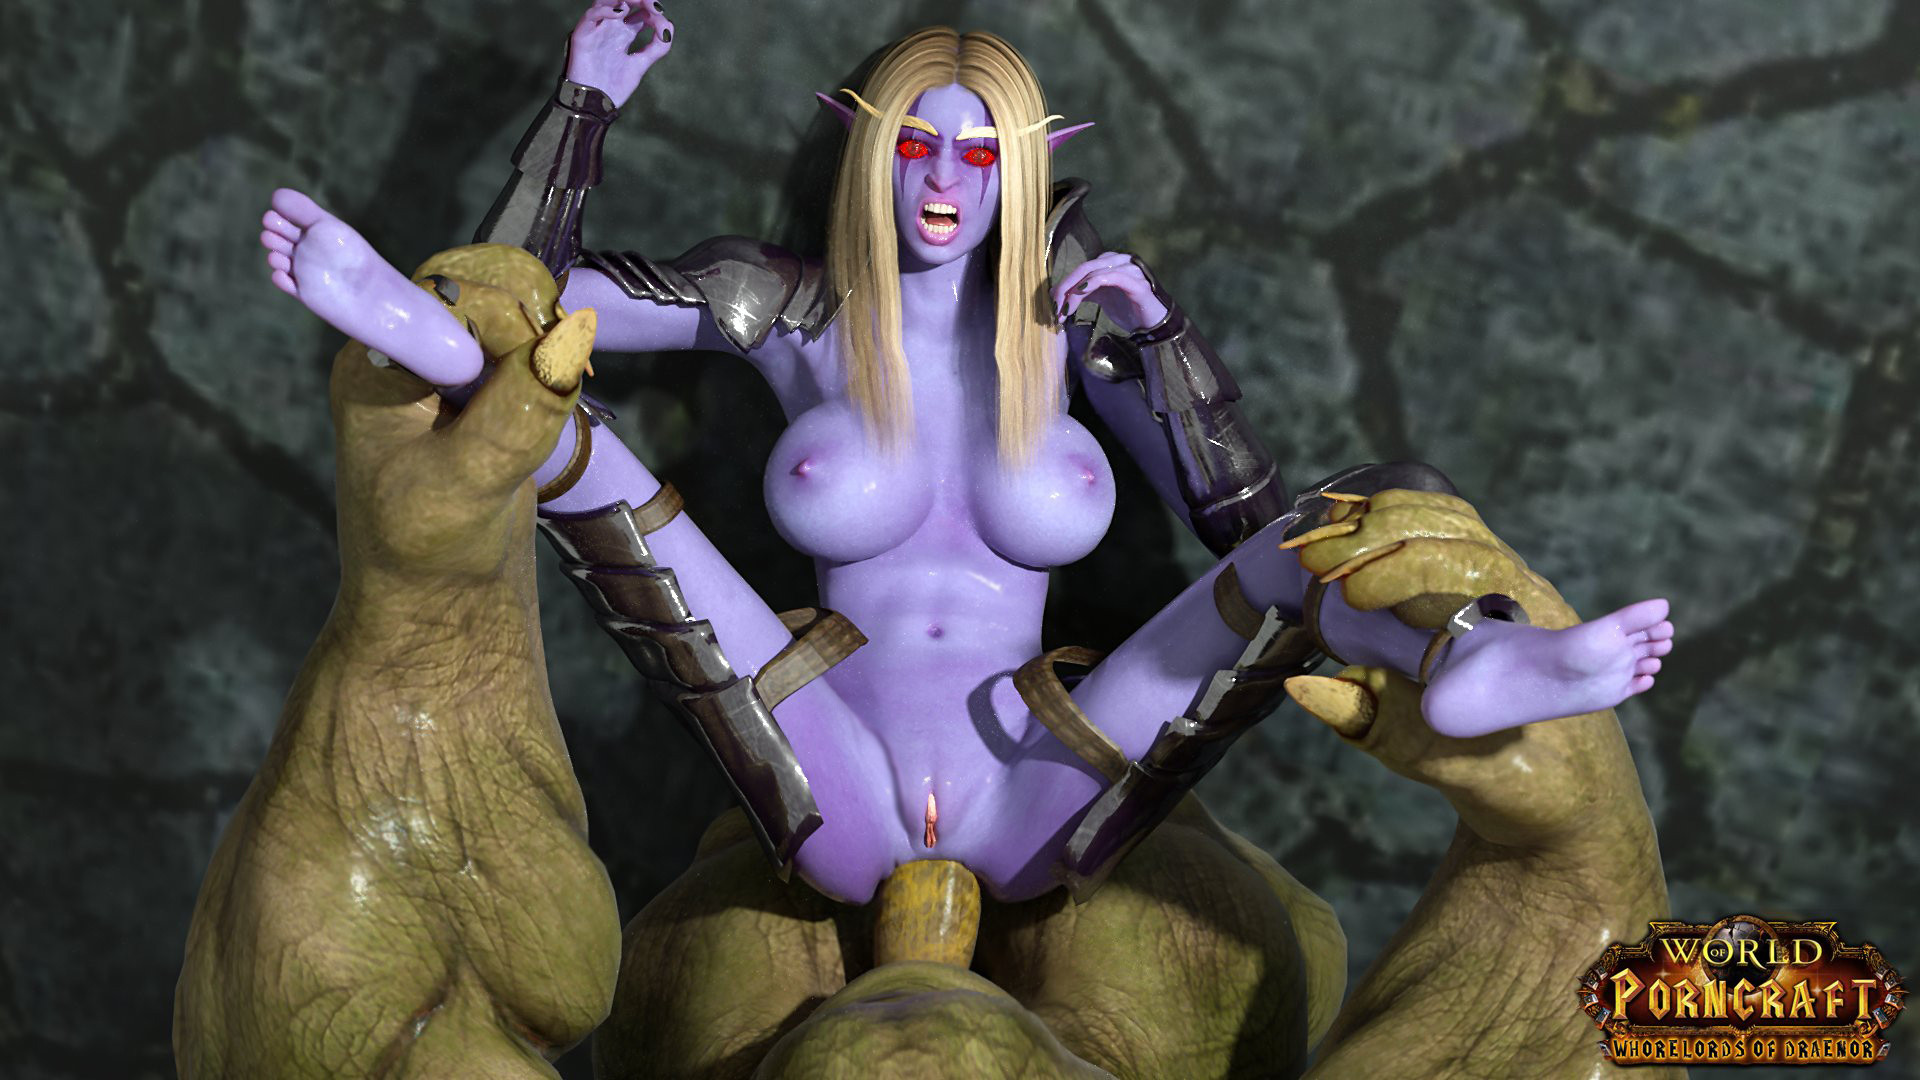 Warcraft naked gamers adult image